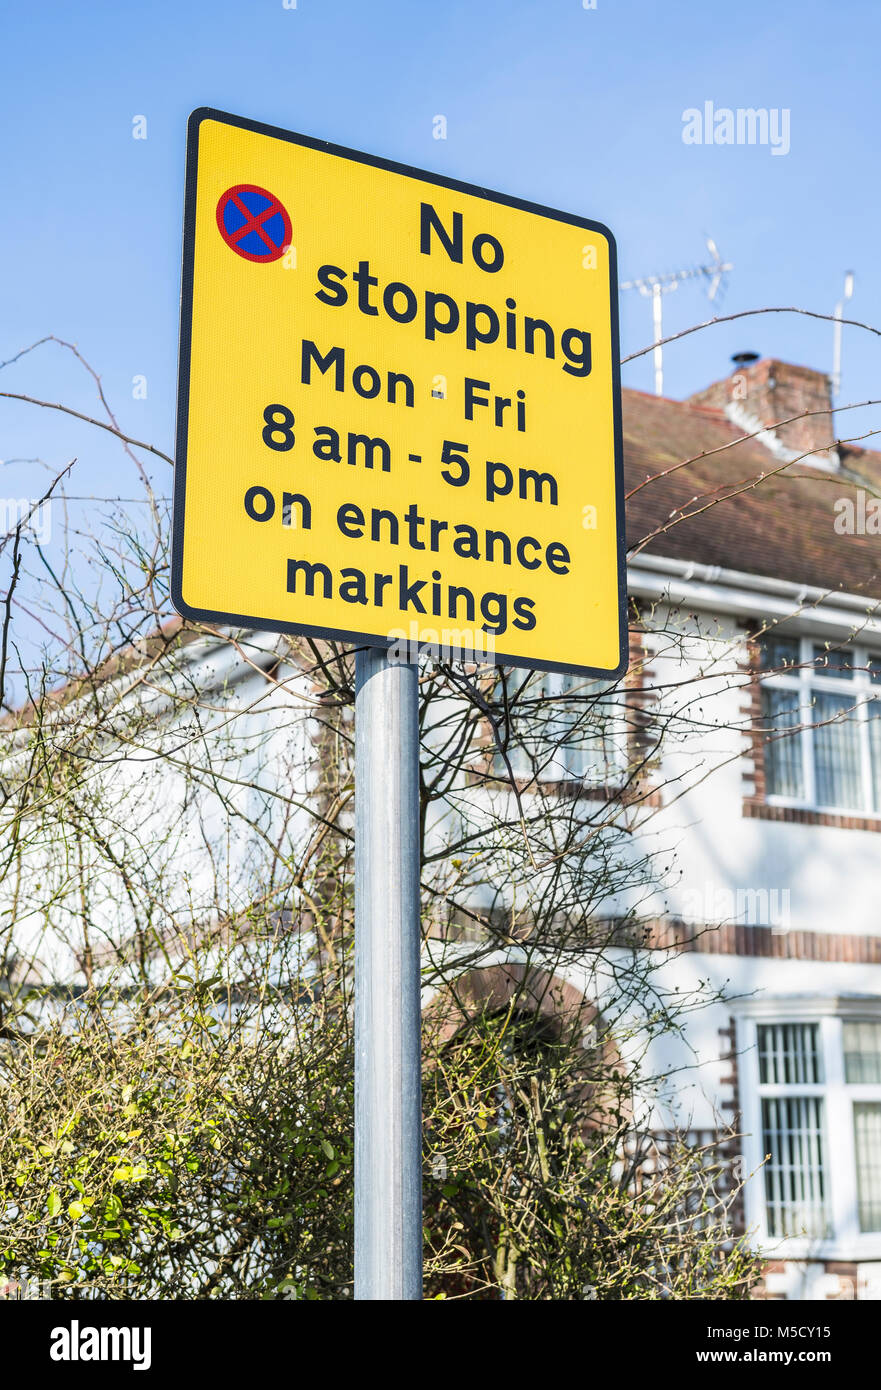 Yellow no stopping warning sign on a roadside in England, UK. - Stock Image